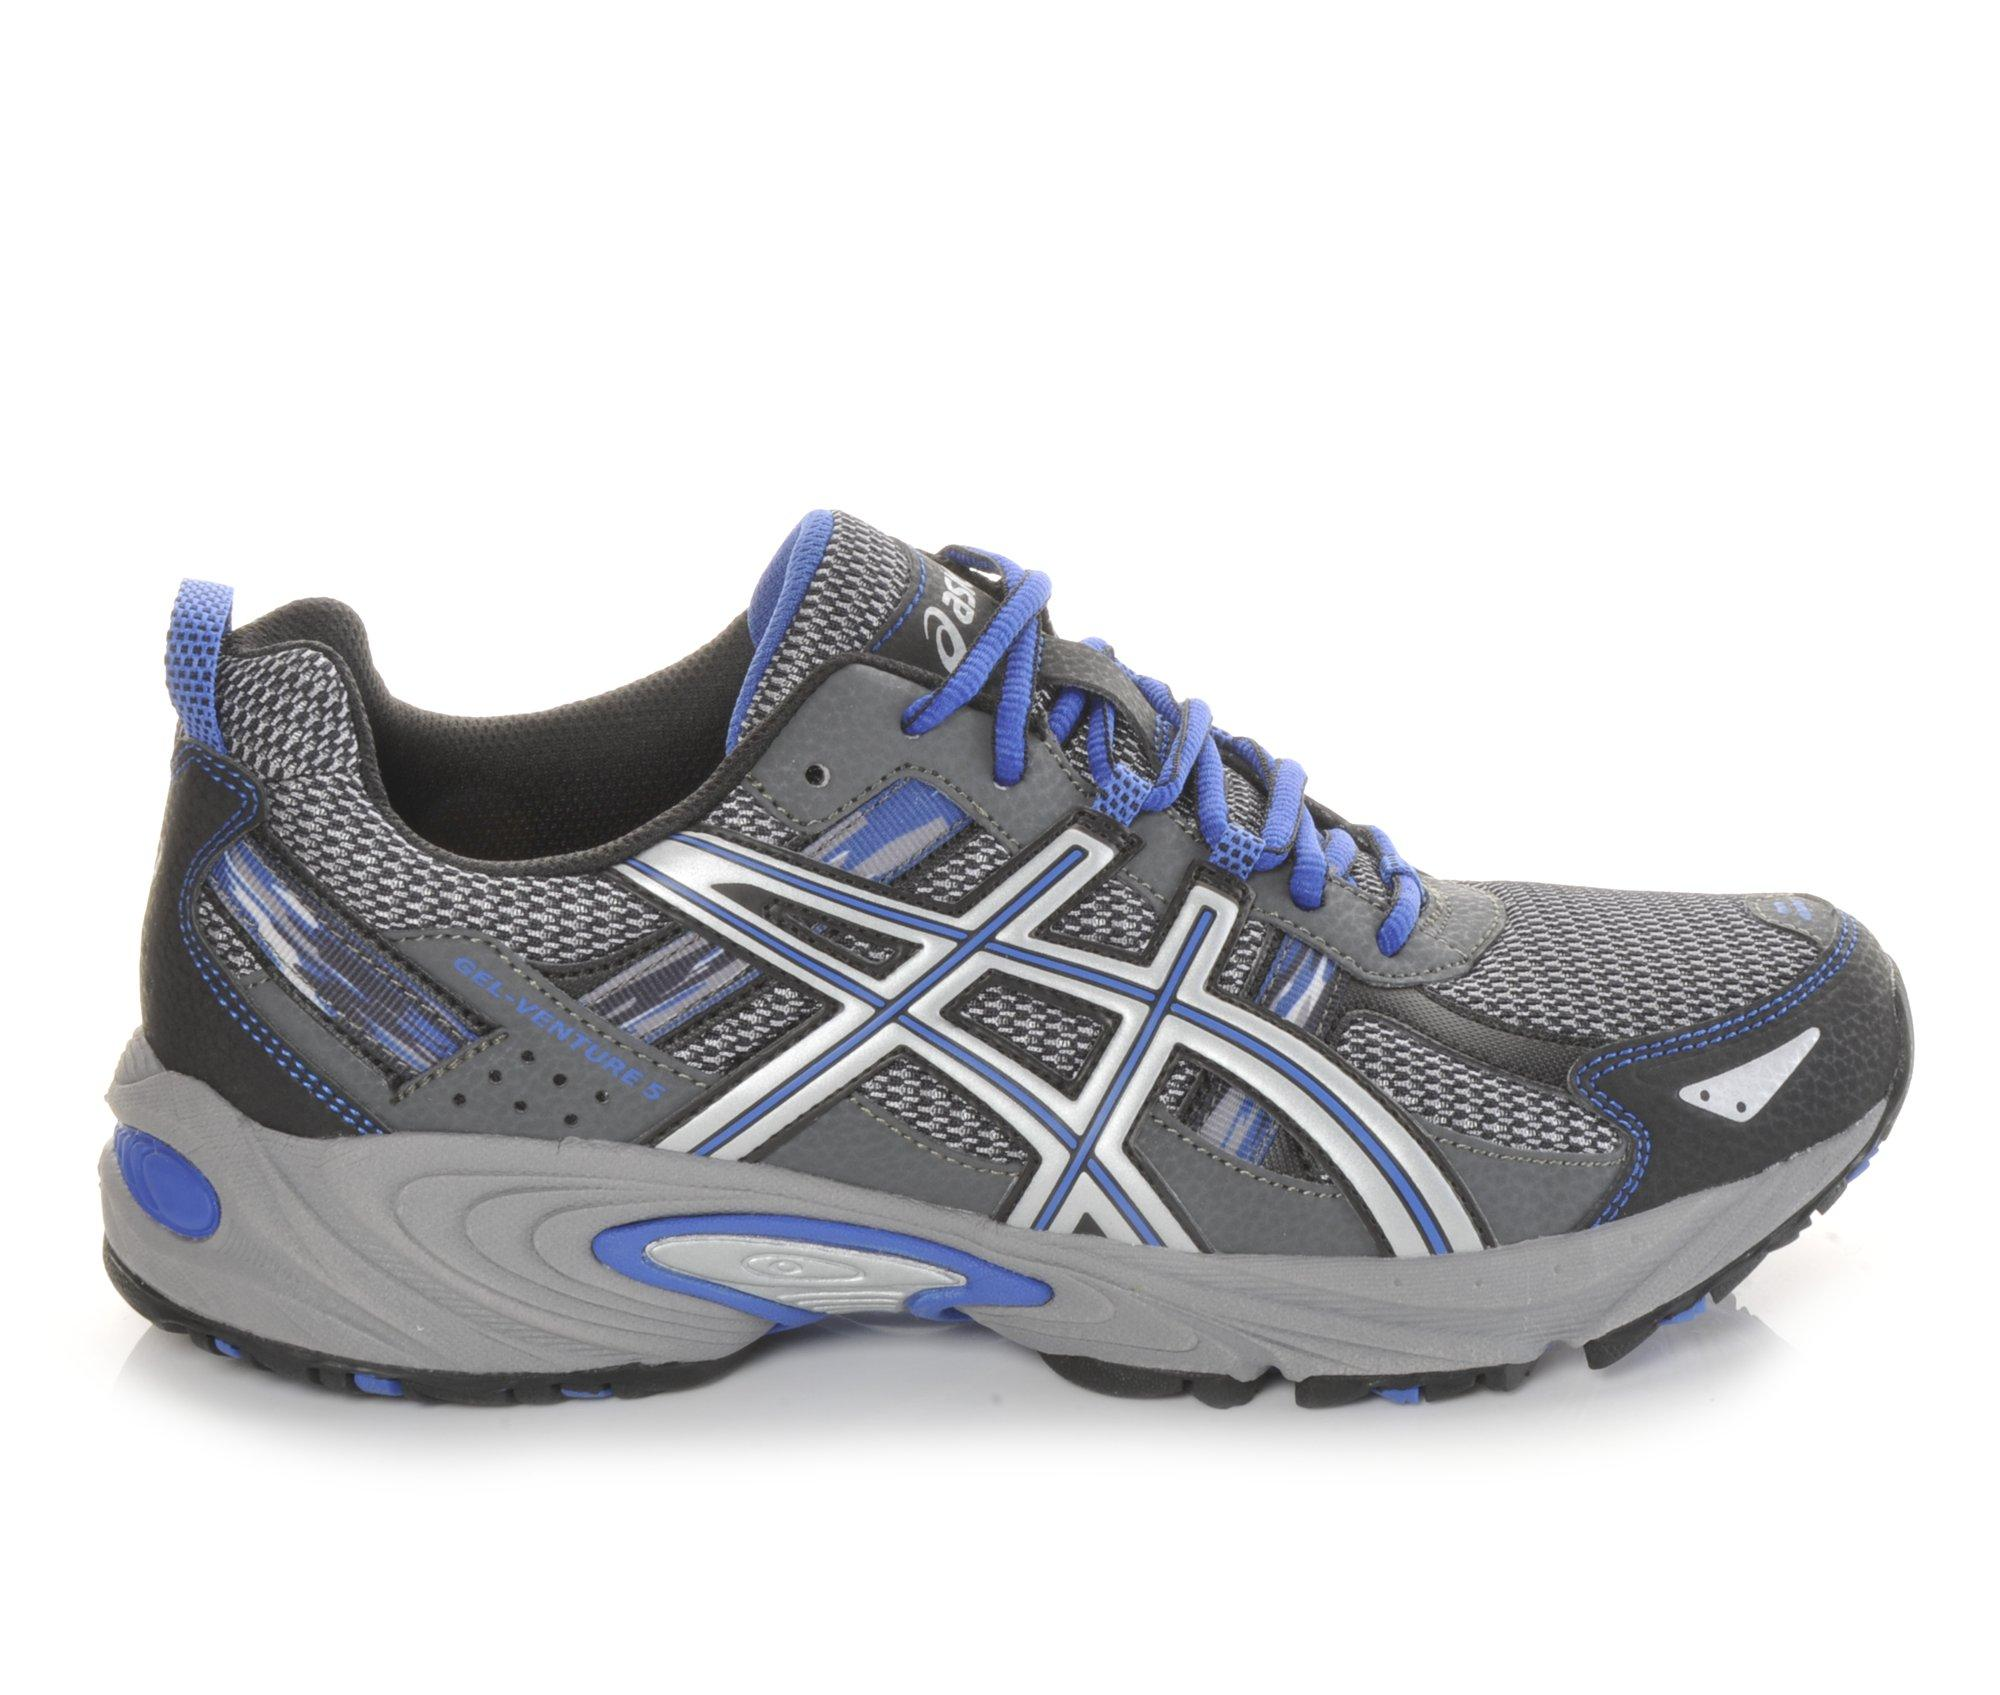 asics shoes gel venture 5 running shoes QIELEFI